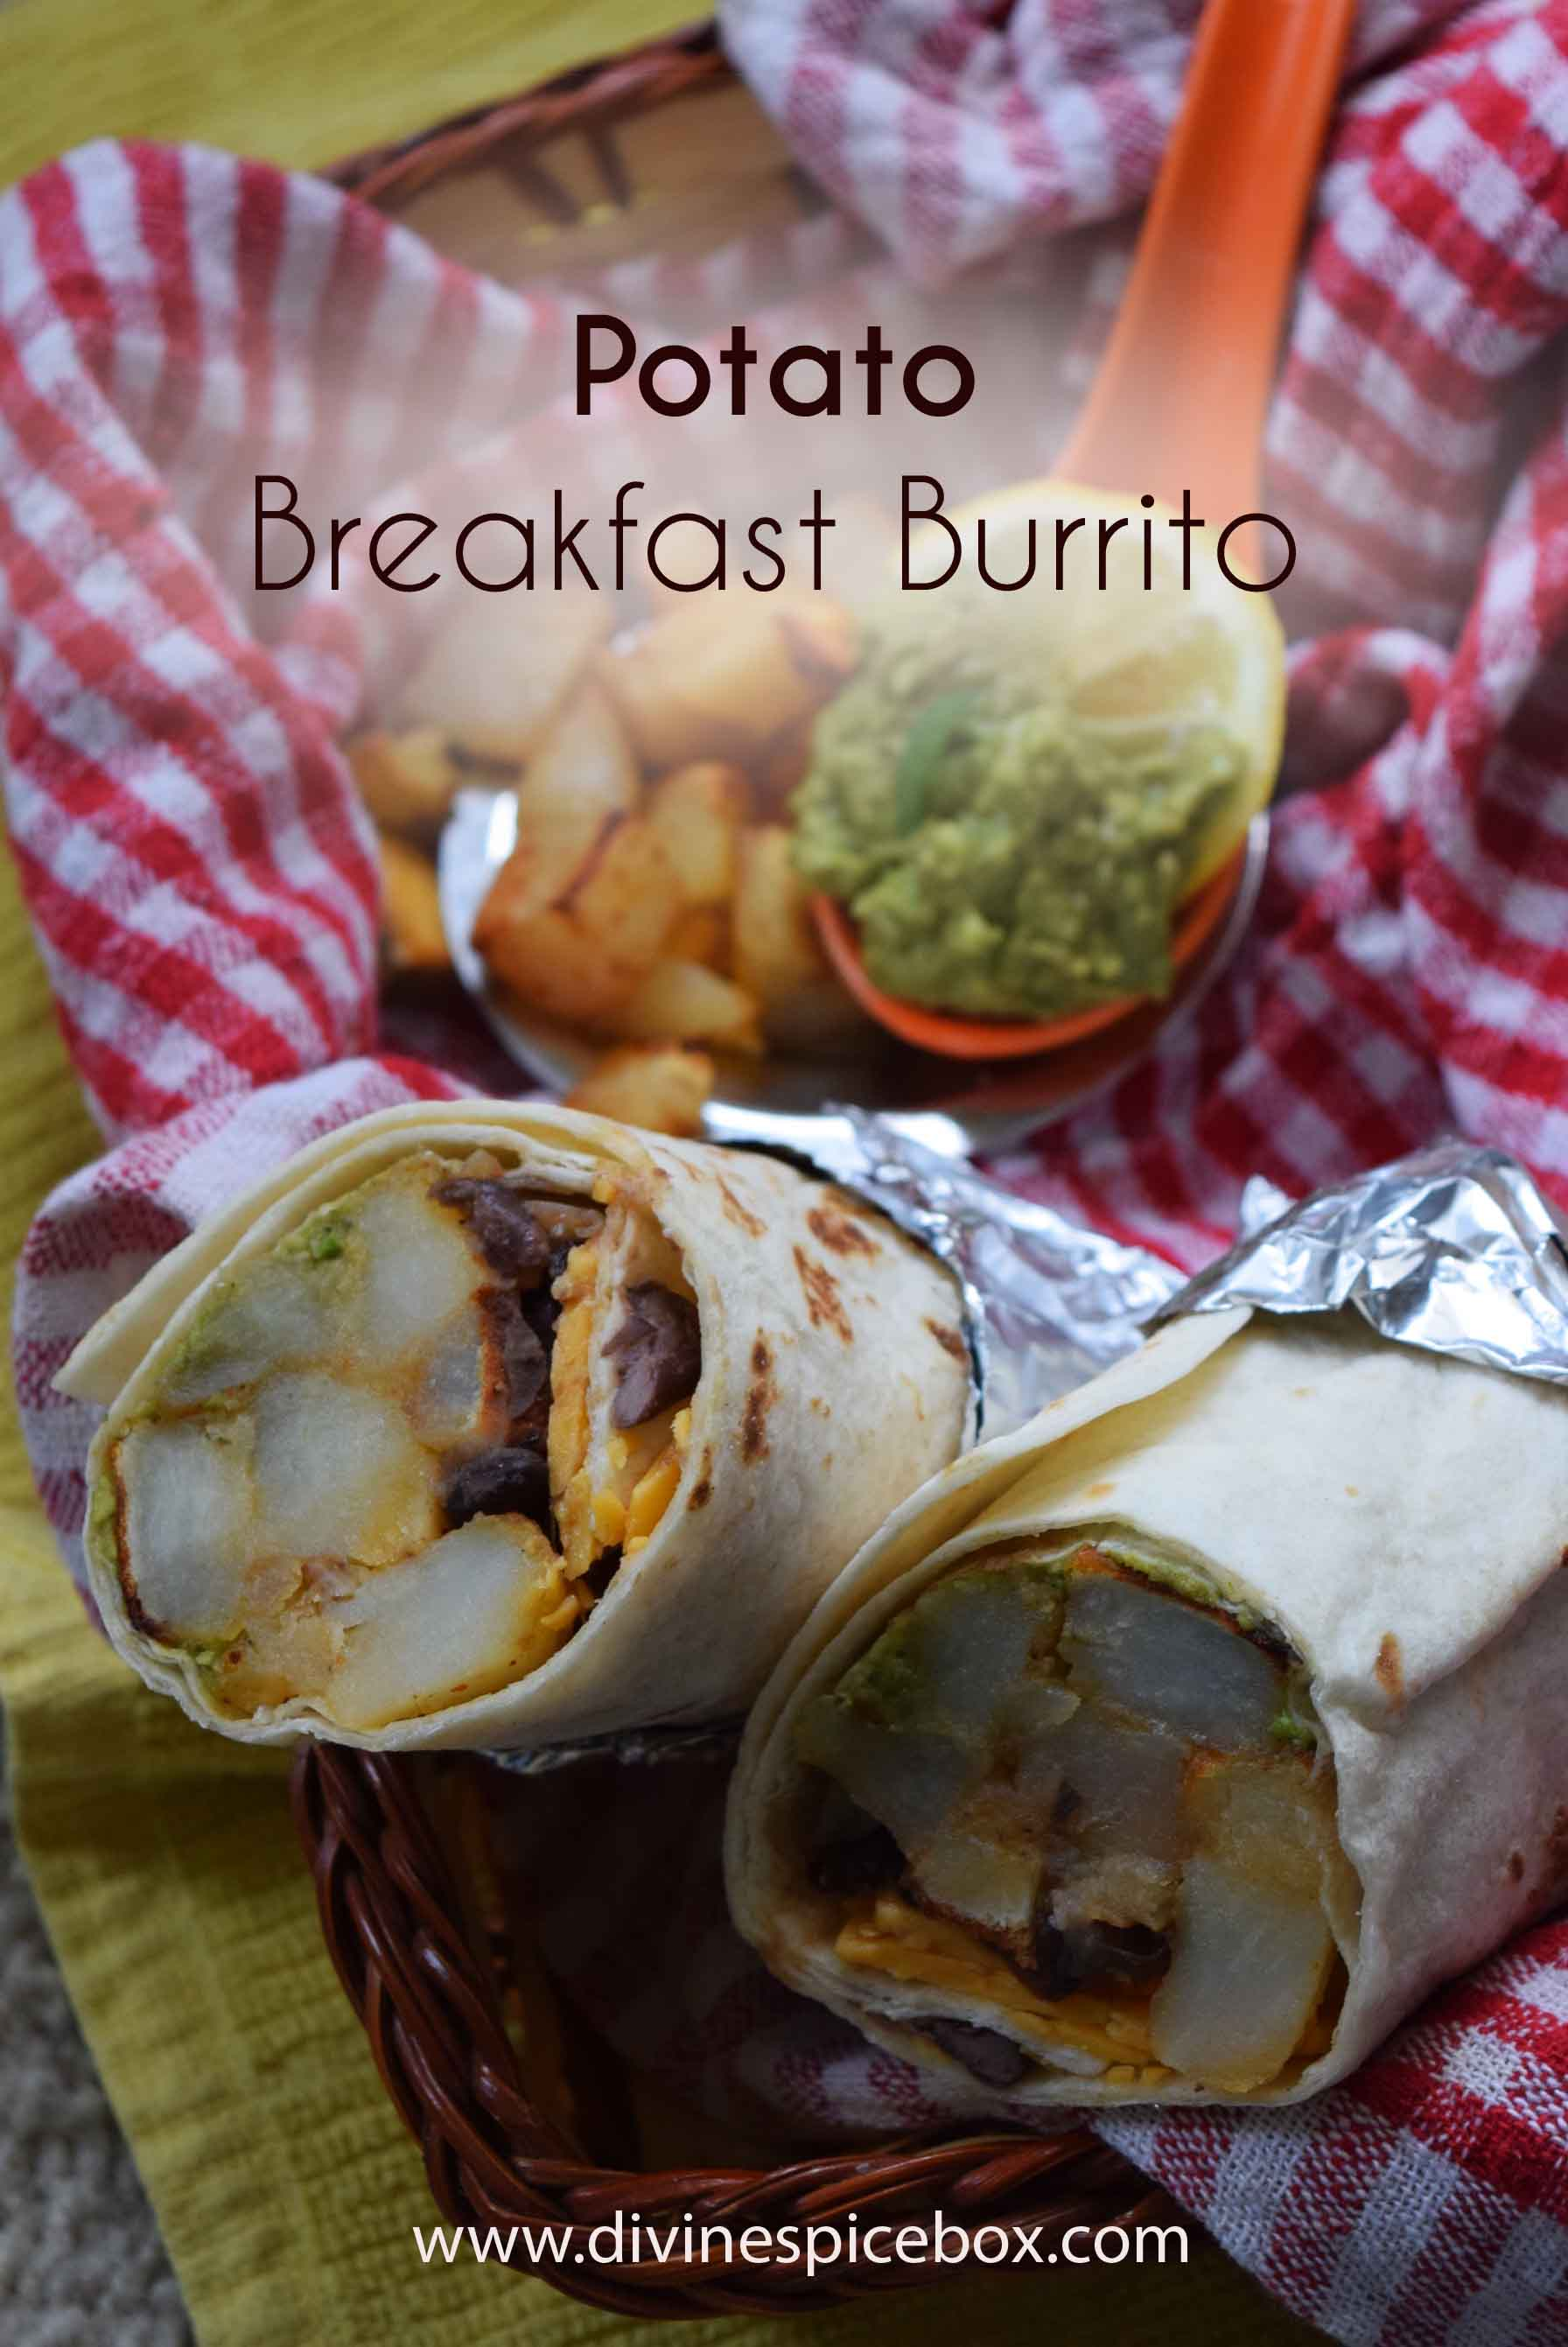 Potato Breakfast Burrito